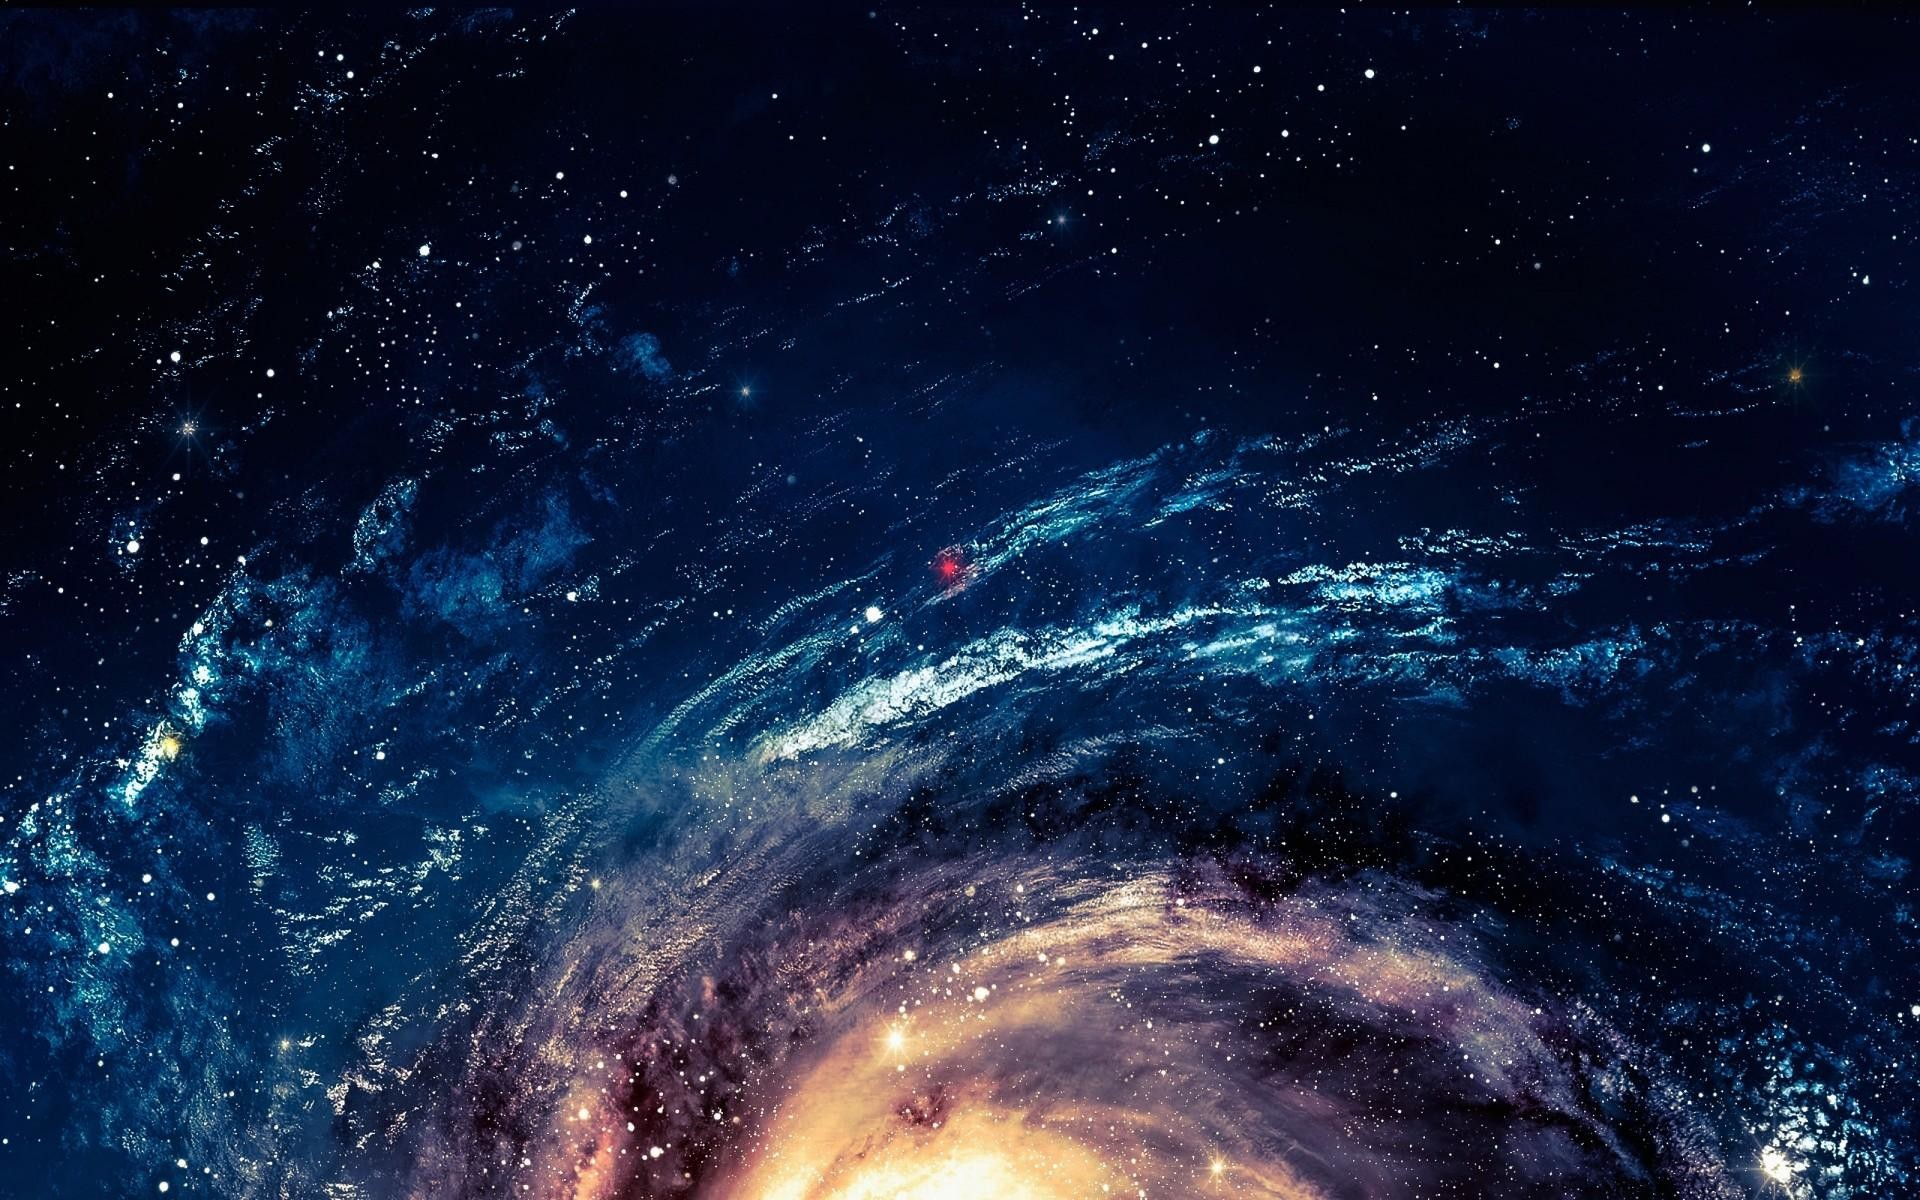 Abstract Space Wallpaper 75 Images